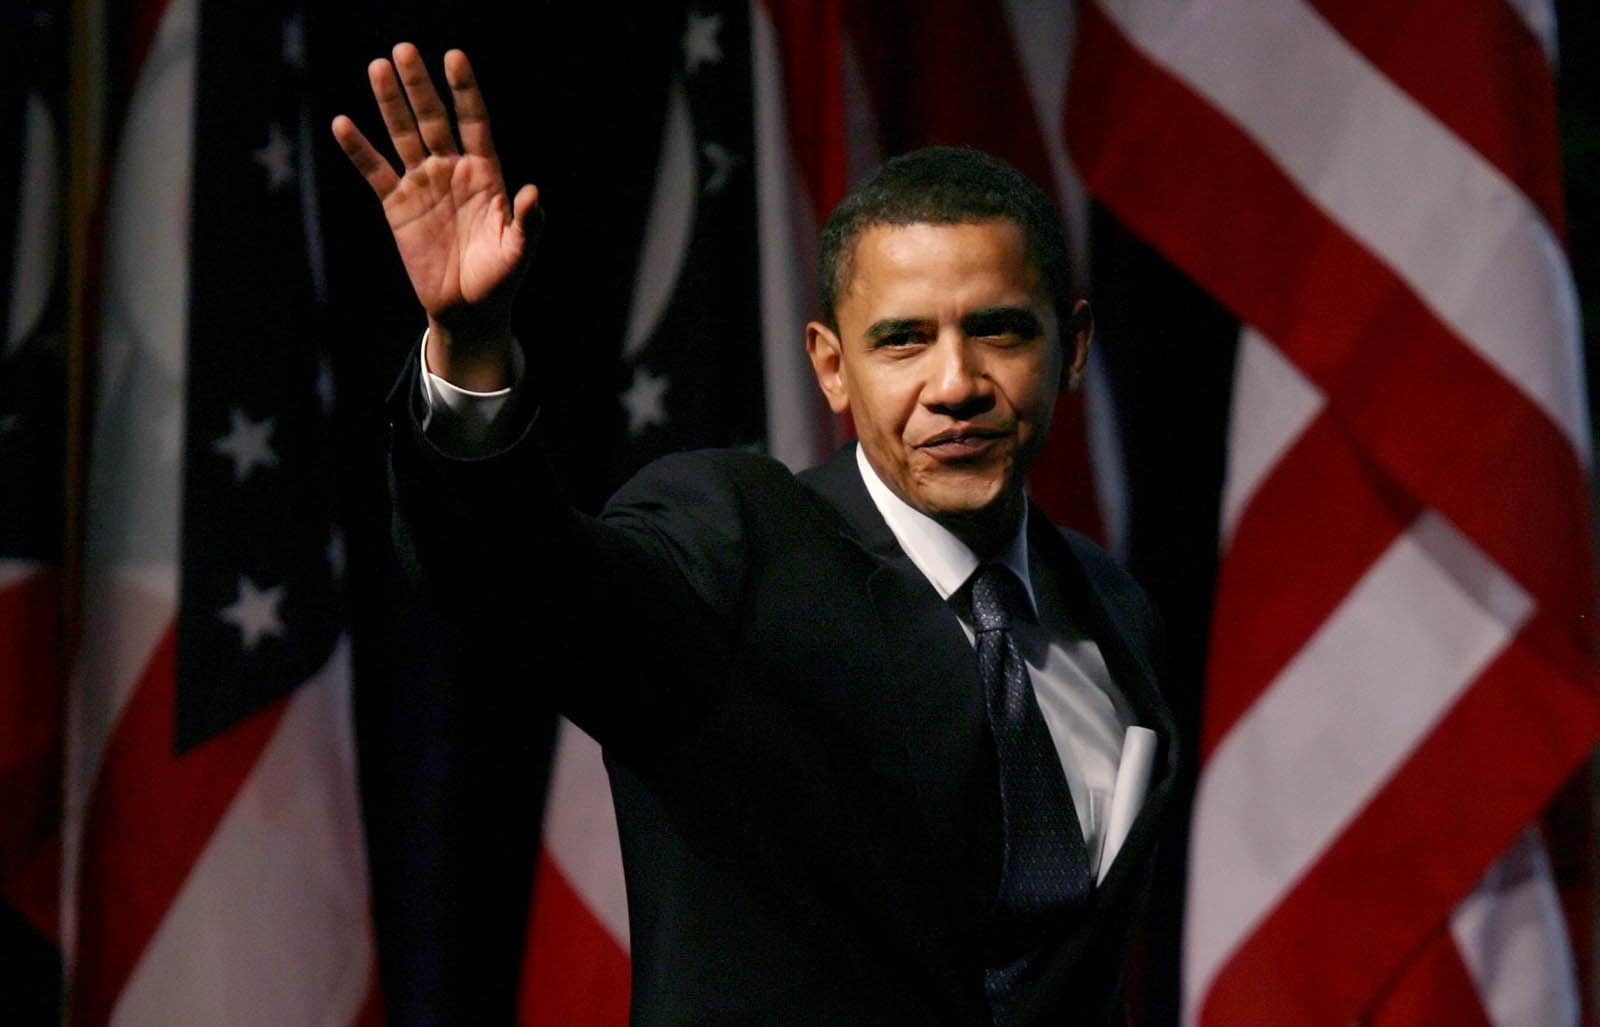 U.S. Sen. Barack Obama, D-Ill, takes the stage to speak at the Ohio Democratic Party State Dinner in Columbus, Ohio, Saturday, June 3, 2006. (AP Photo/Will Shilling)